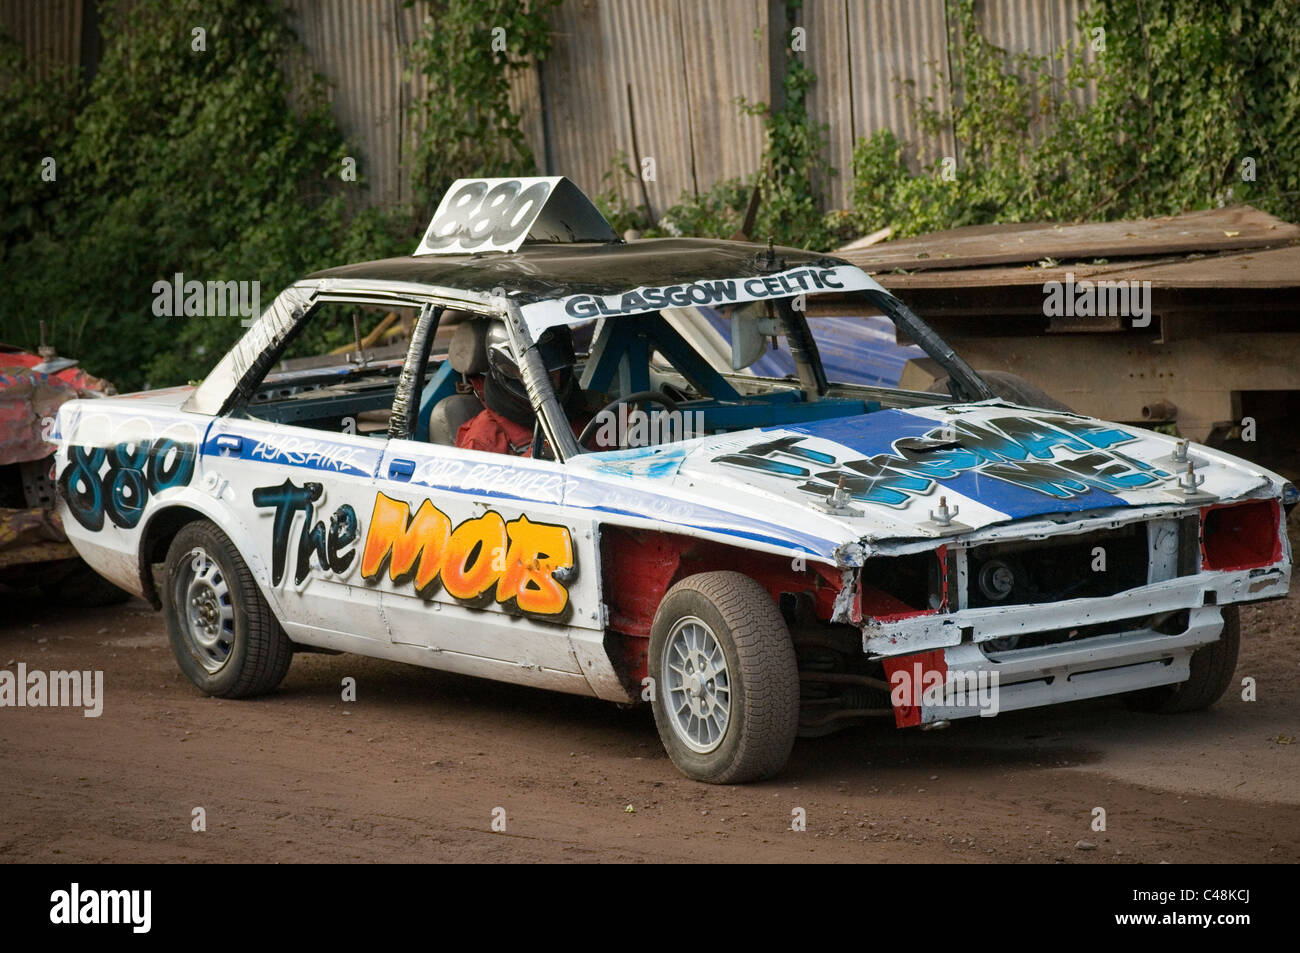 stock photo banger race racing races stock car cars stockcar stockcars demolition derby destruction derbies old scrap junk ready to be smash